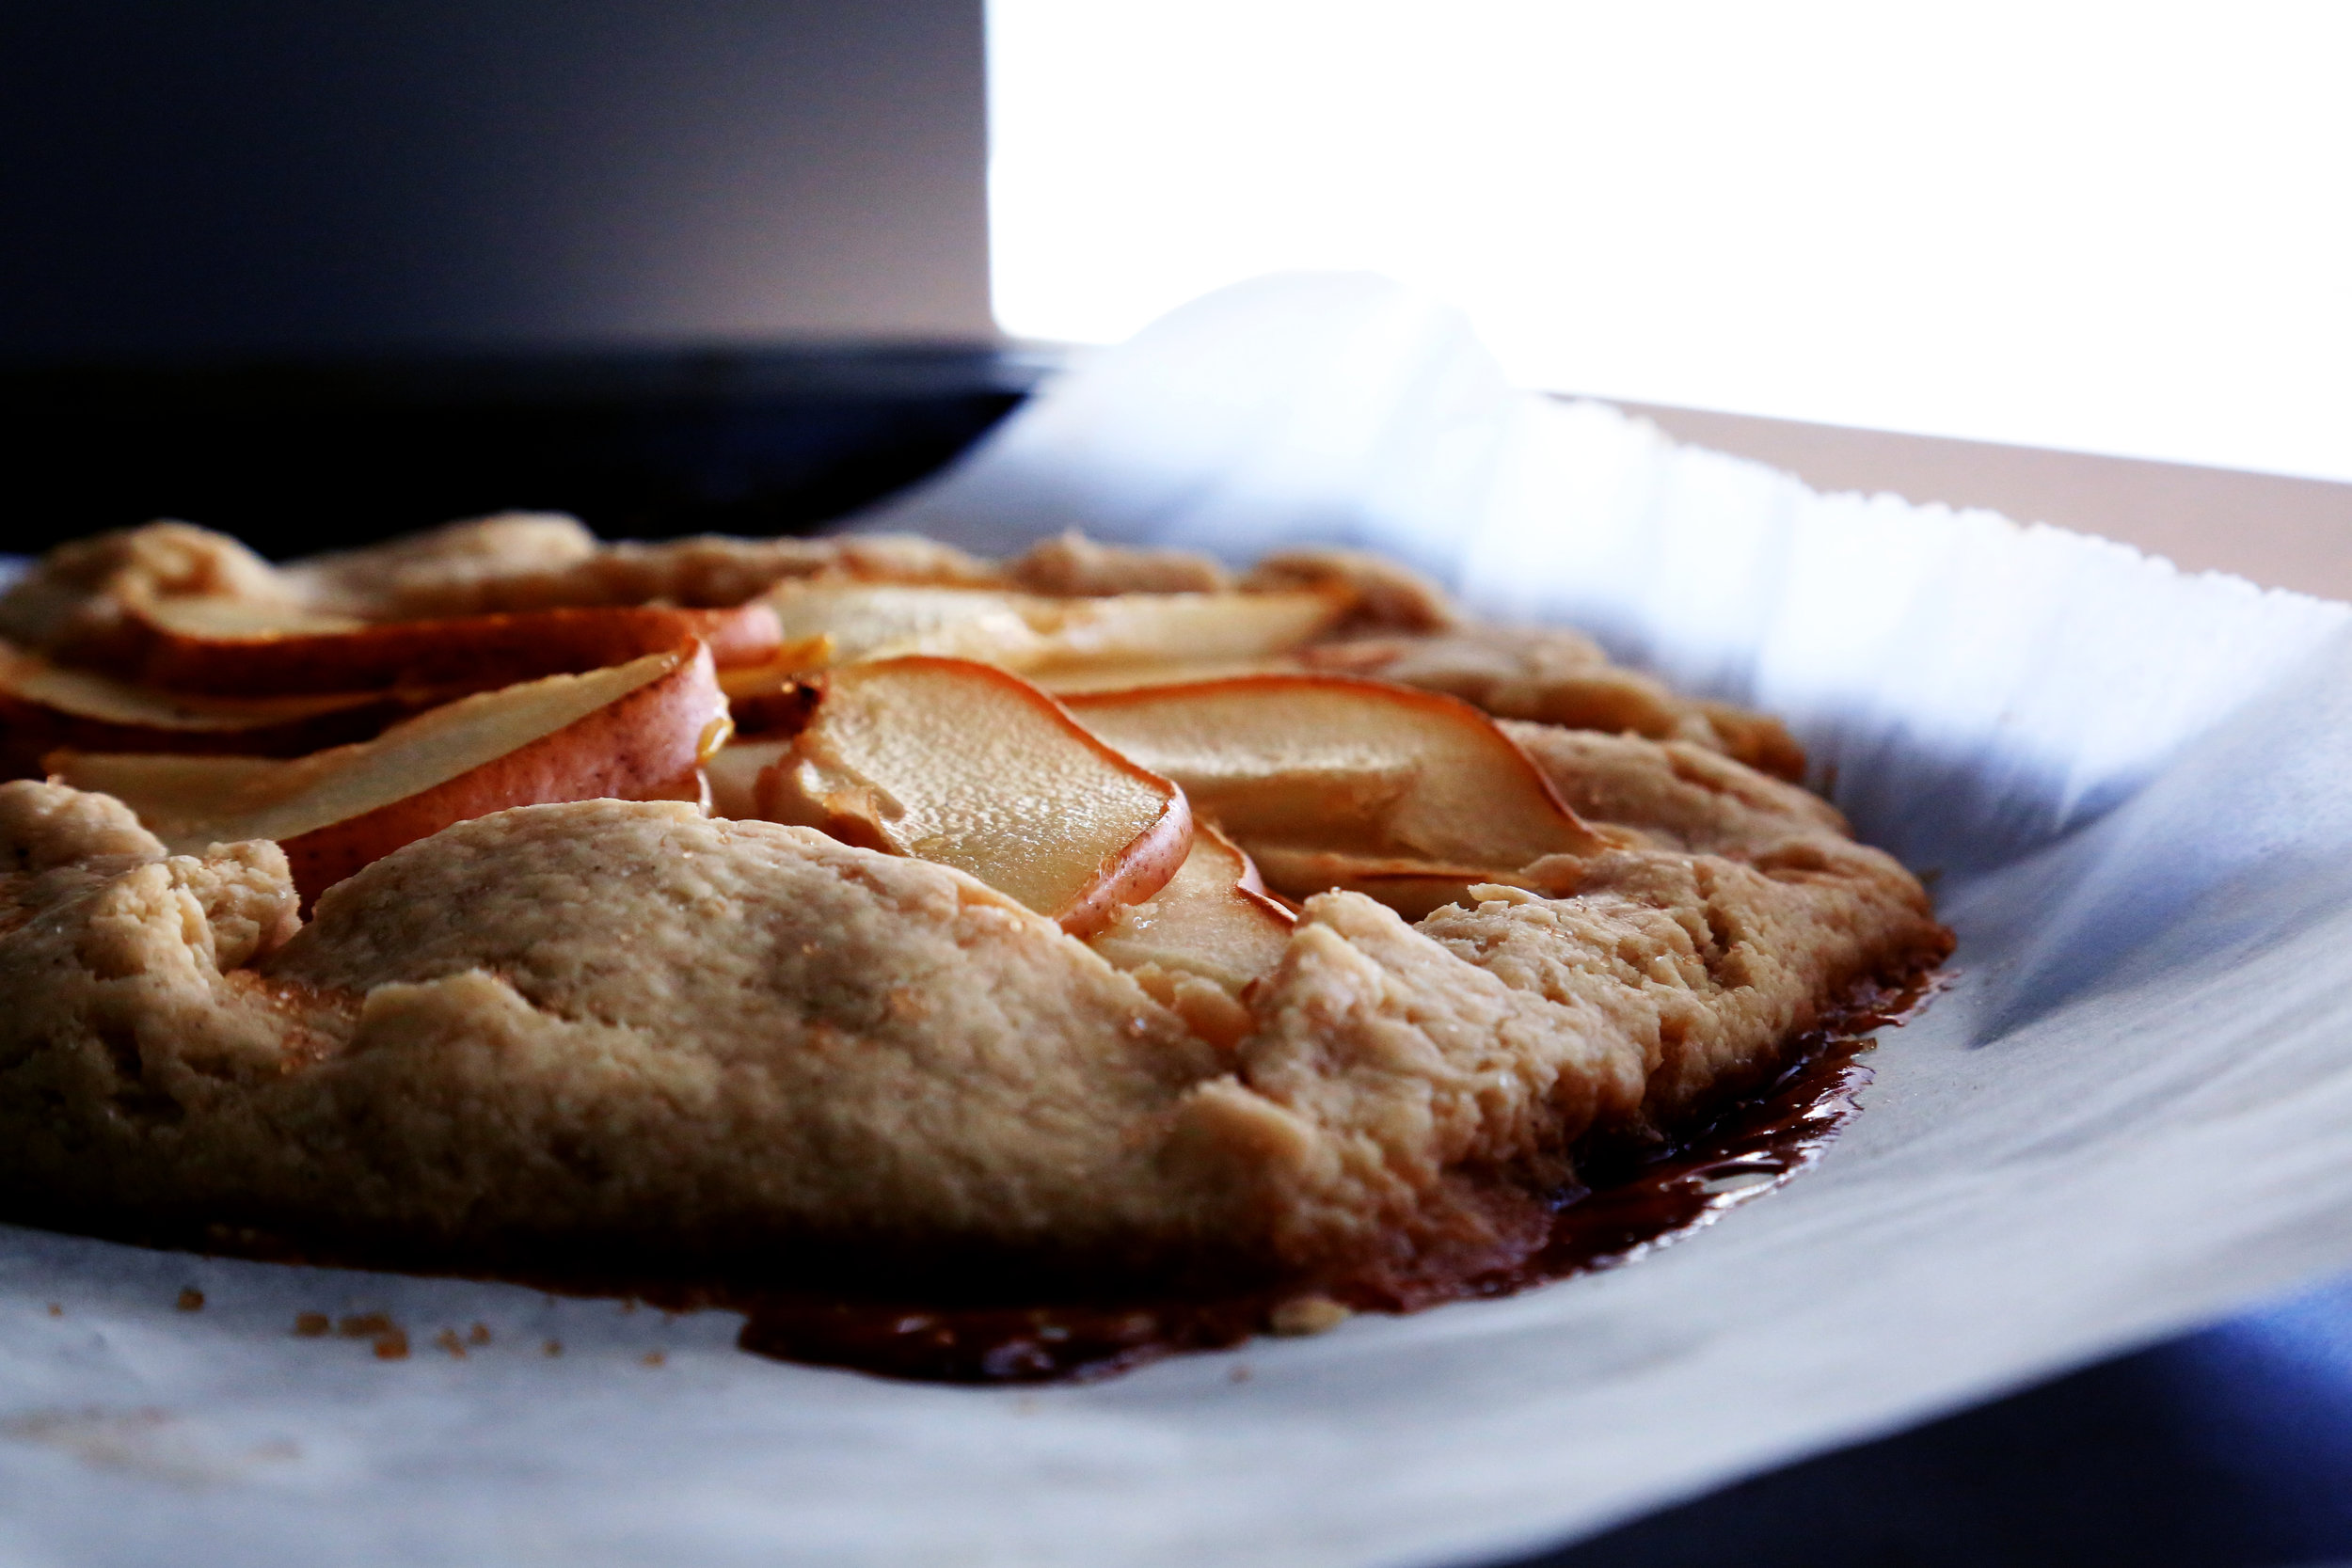 front_paige_pear_galette_08.JPG